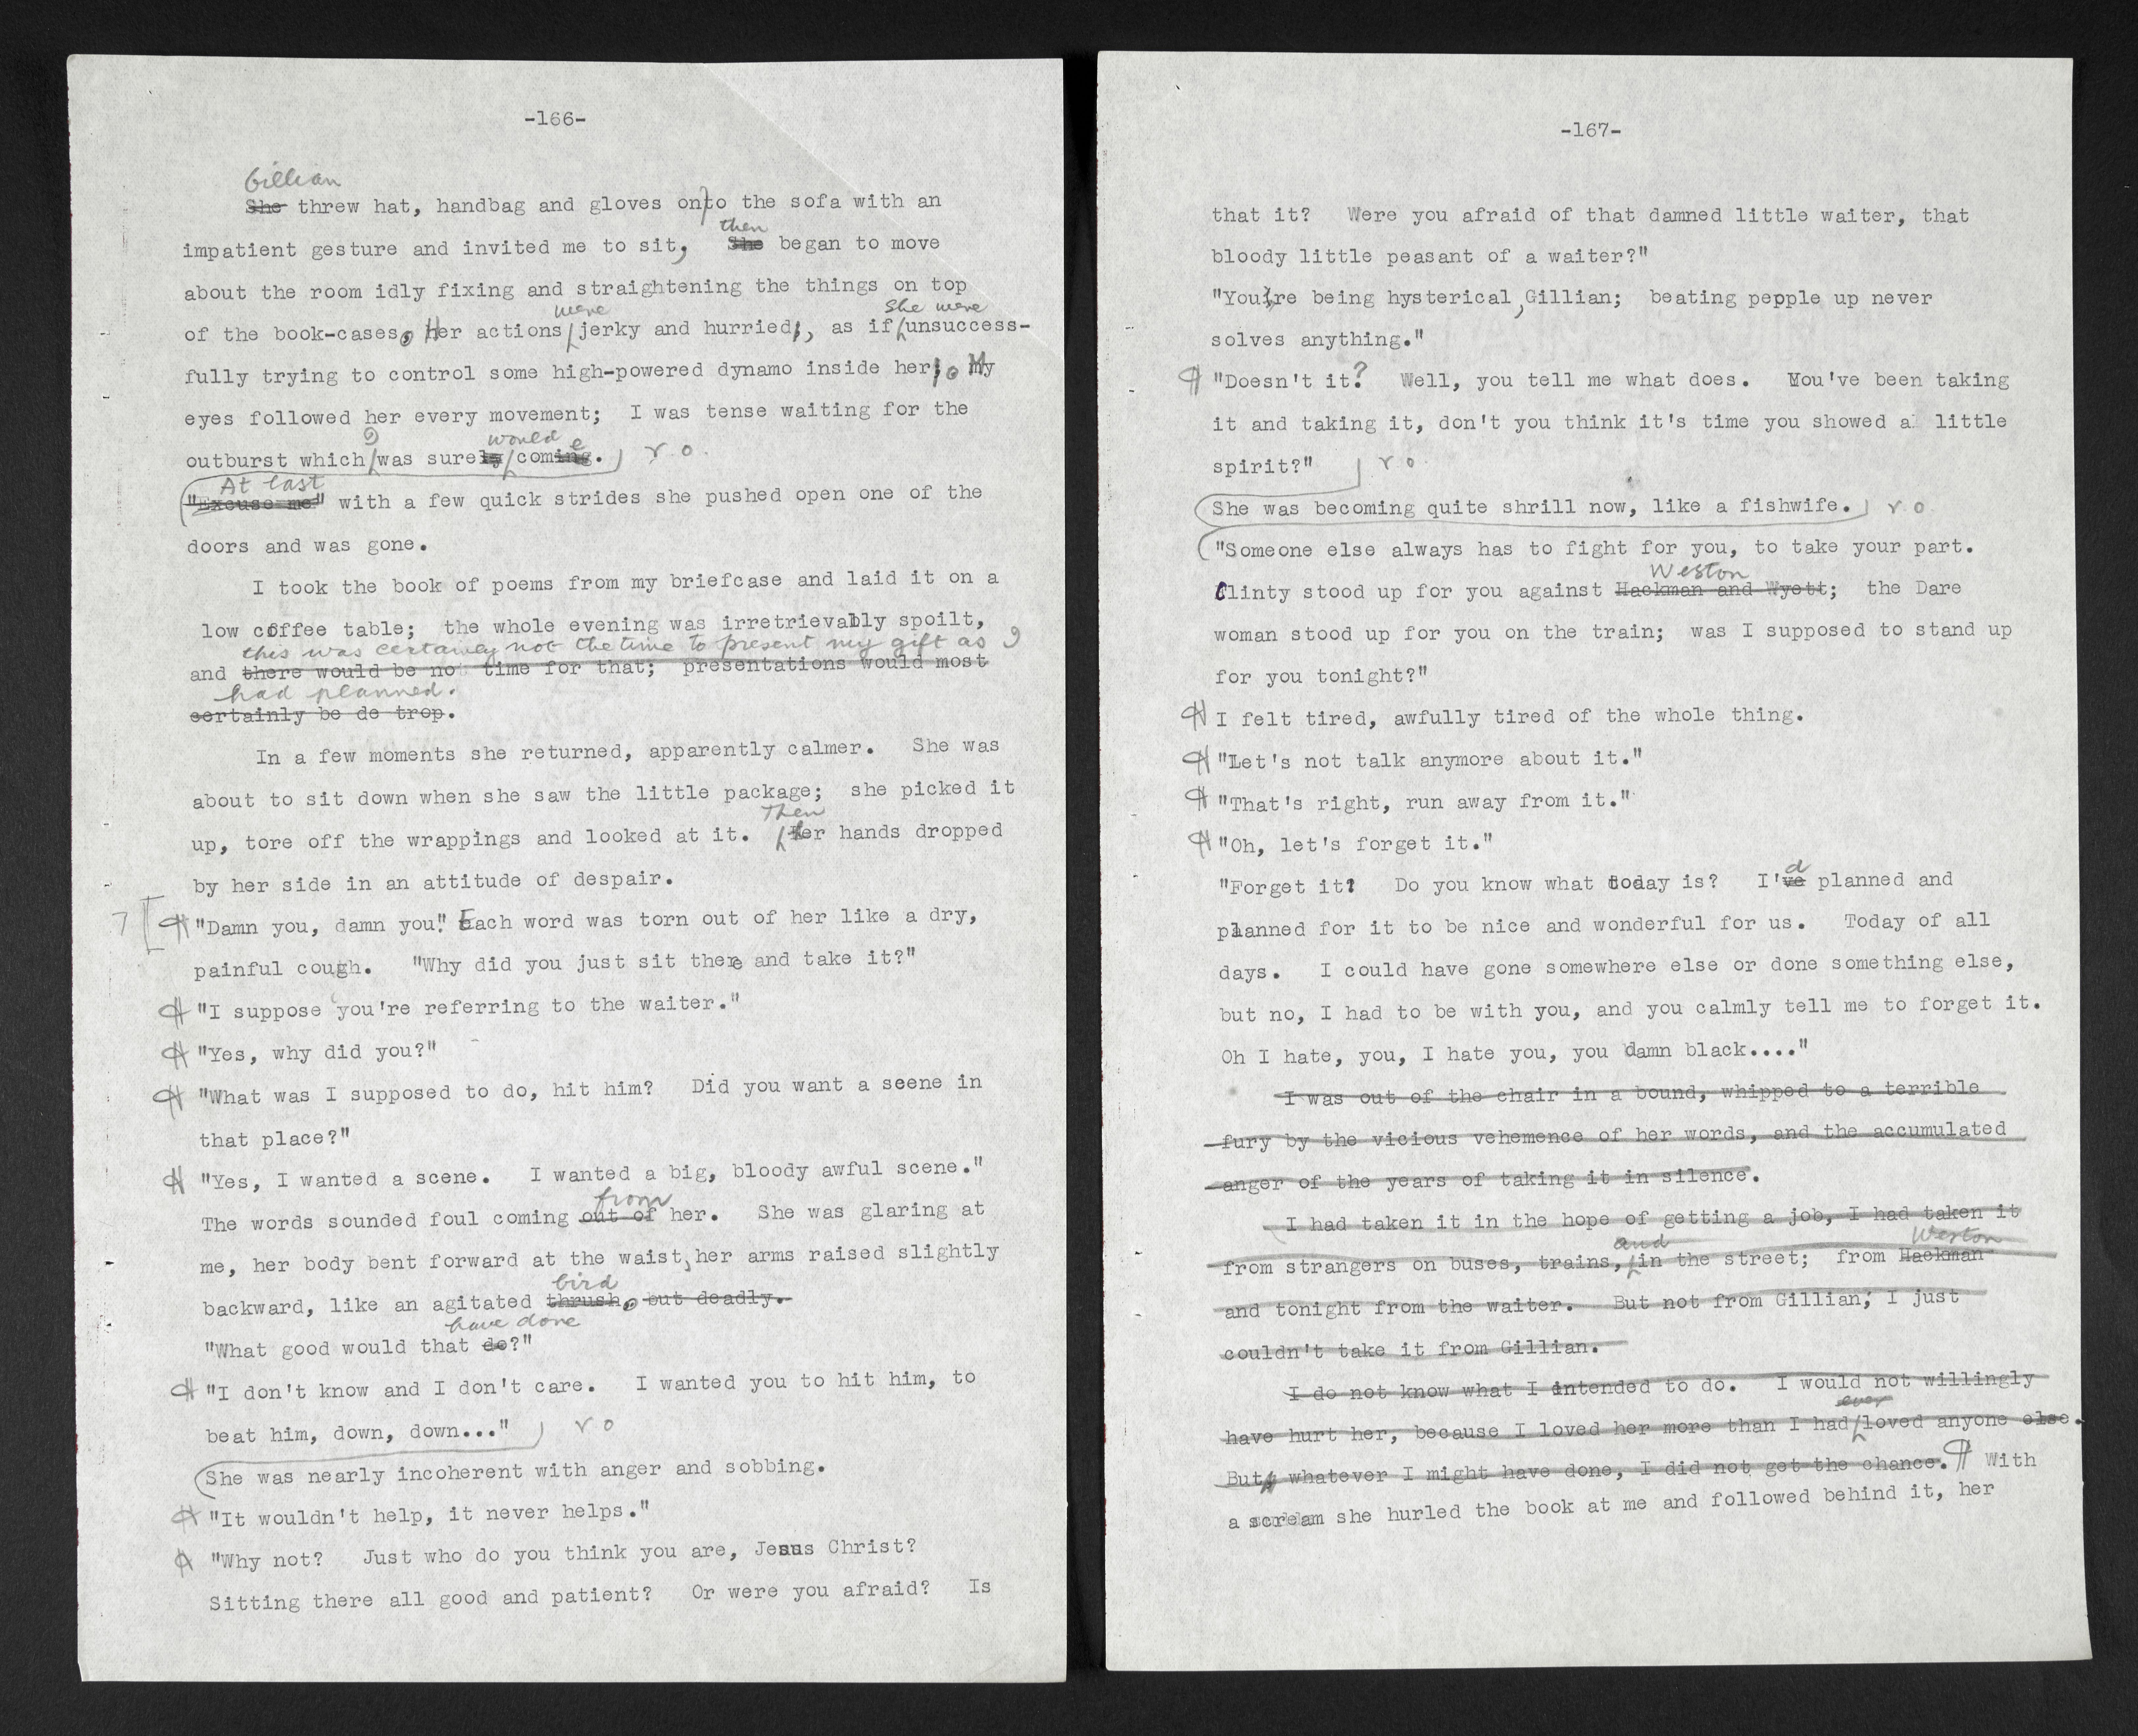 E. R. Braithwaite's typescript of his novel To Sir, With Love (1959) with self-censored lines. ©The Estate of E.R. Braithwaite